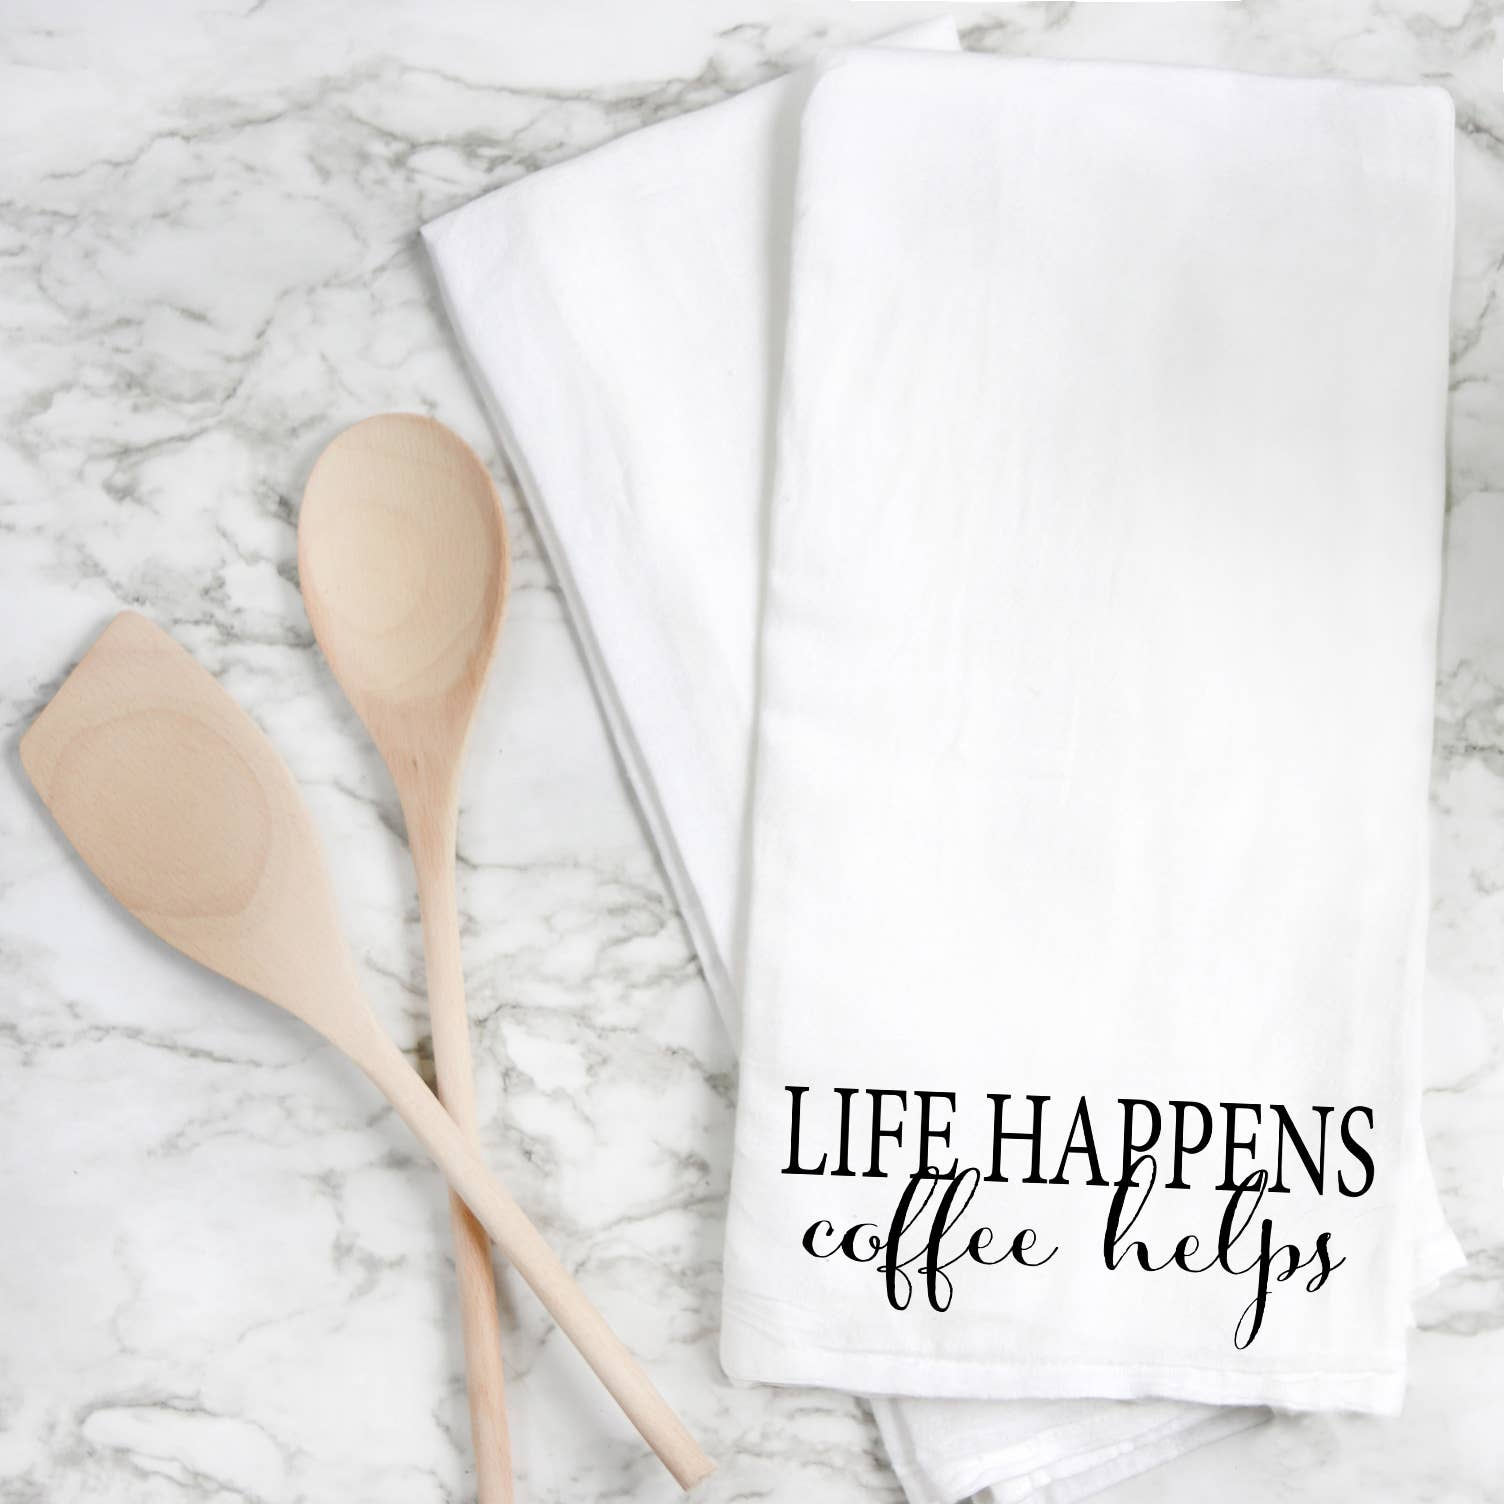 Life Happens Coffee Helps Tea Towel